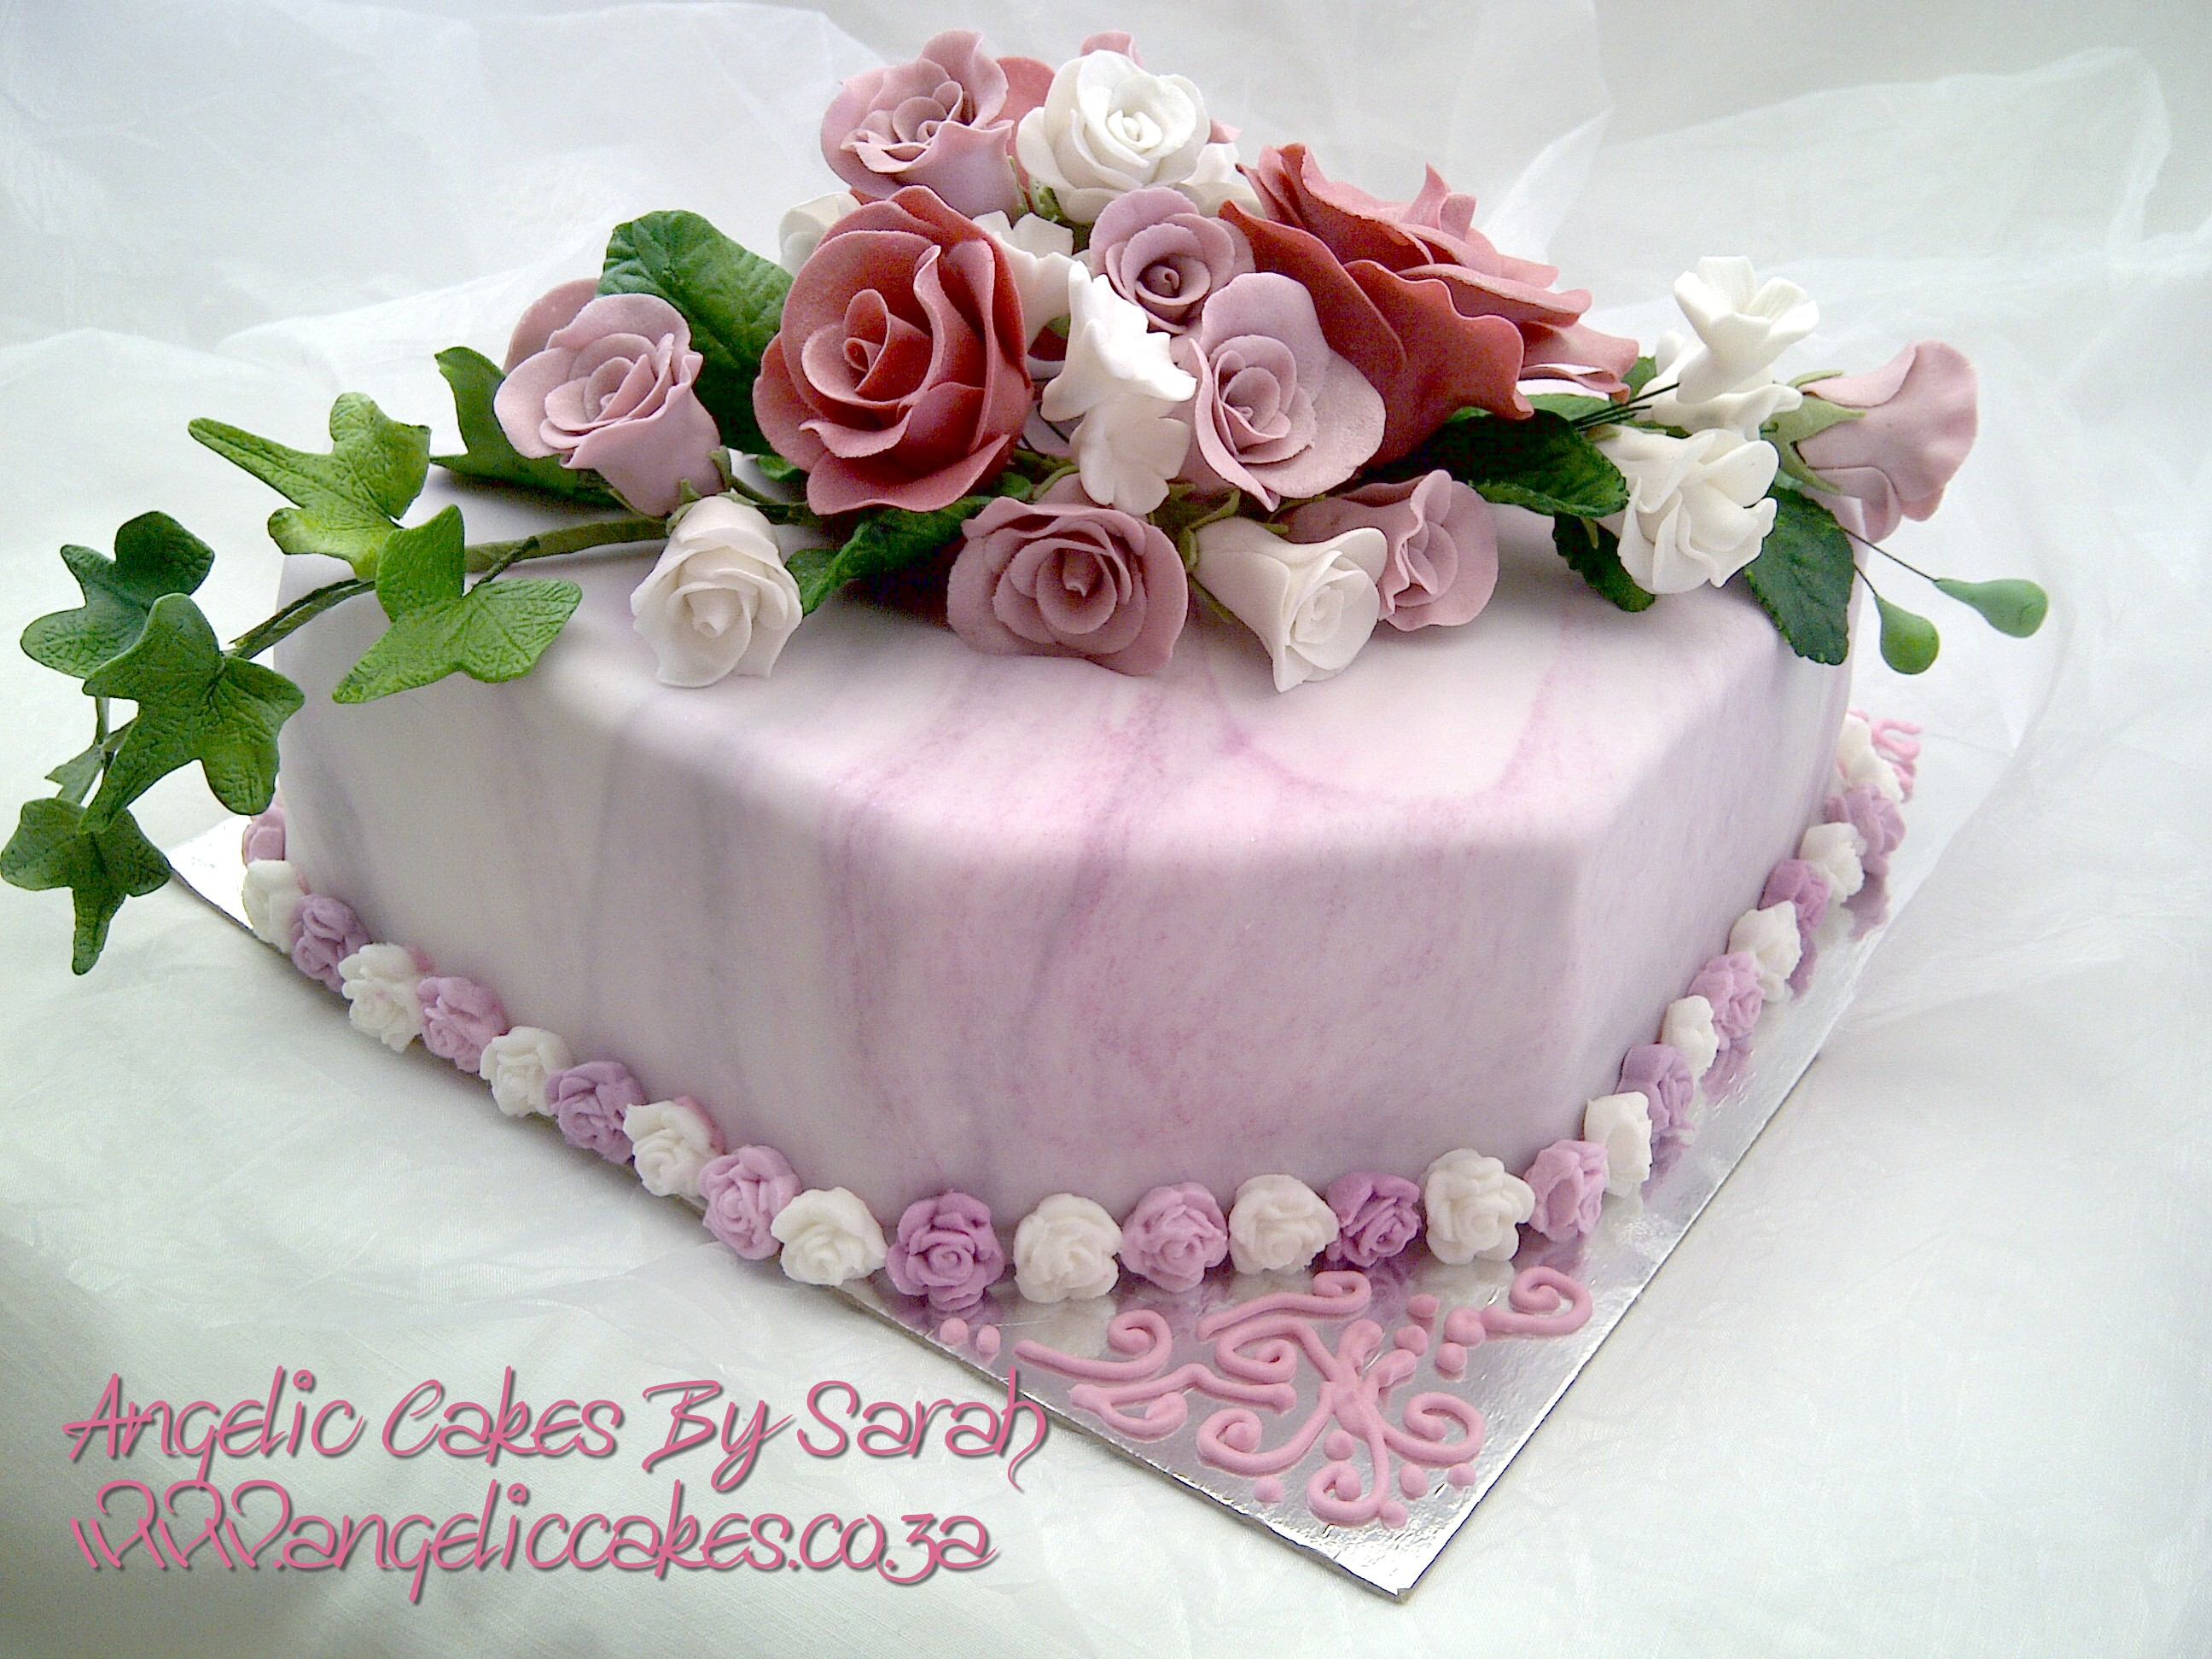 Angelic Cakes By Sarah Home